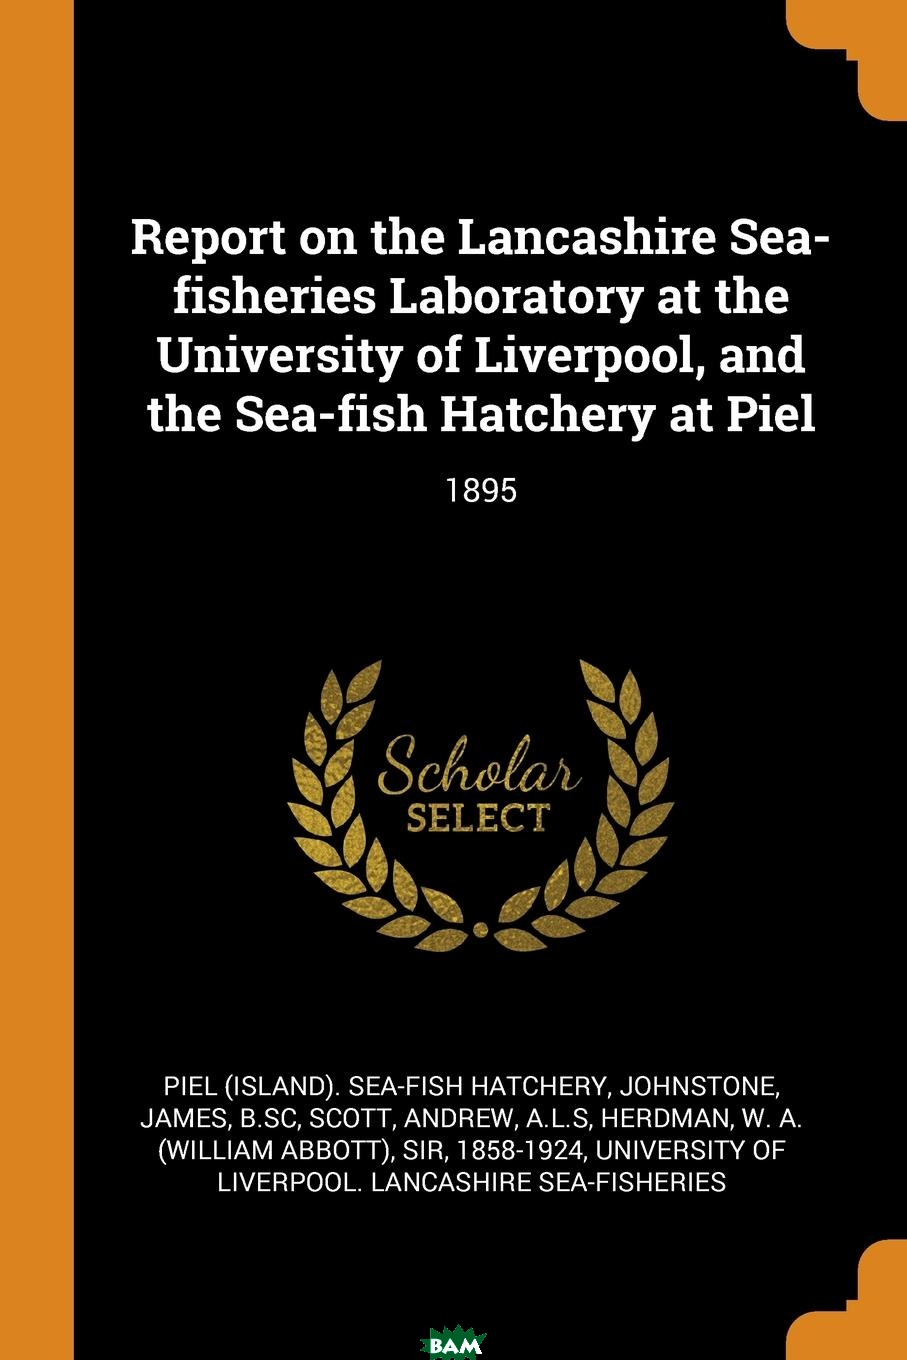 Купить Report on the Lancashire Sea-fisheries Laboratory at the University of Liverpool, and the Sea-fish Hatchery at Piel. 1895, Piel Sea-fish hatchery, James Johnstone, Andrew Scott, 9780353343641